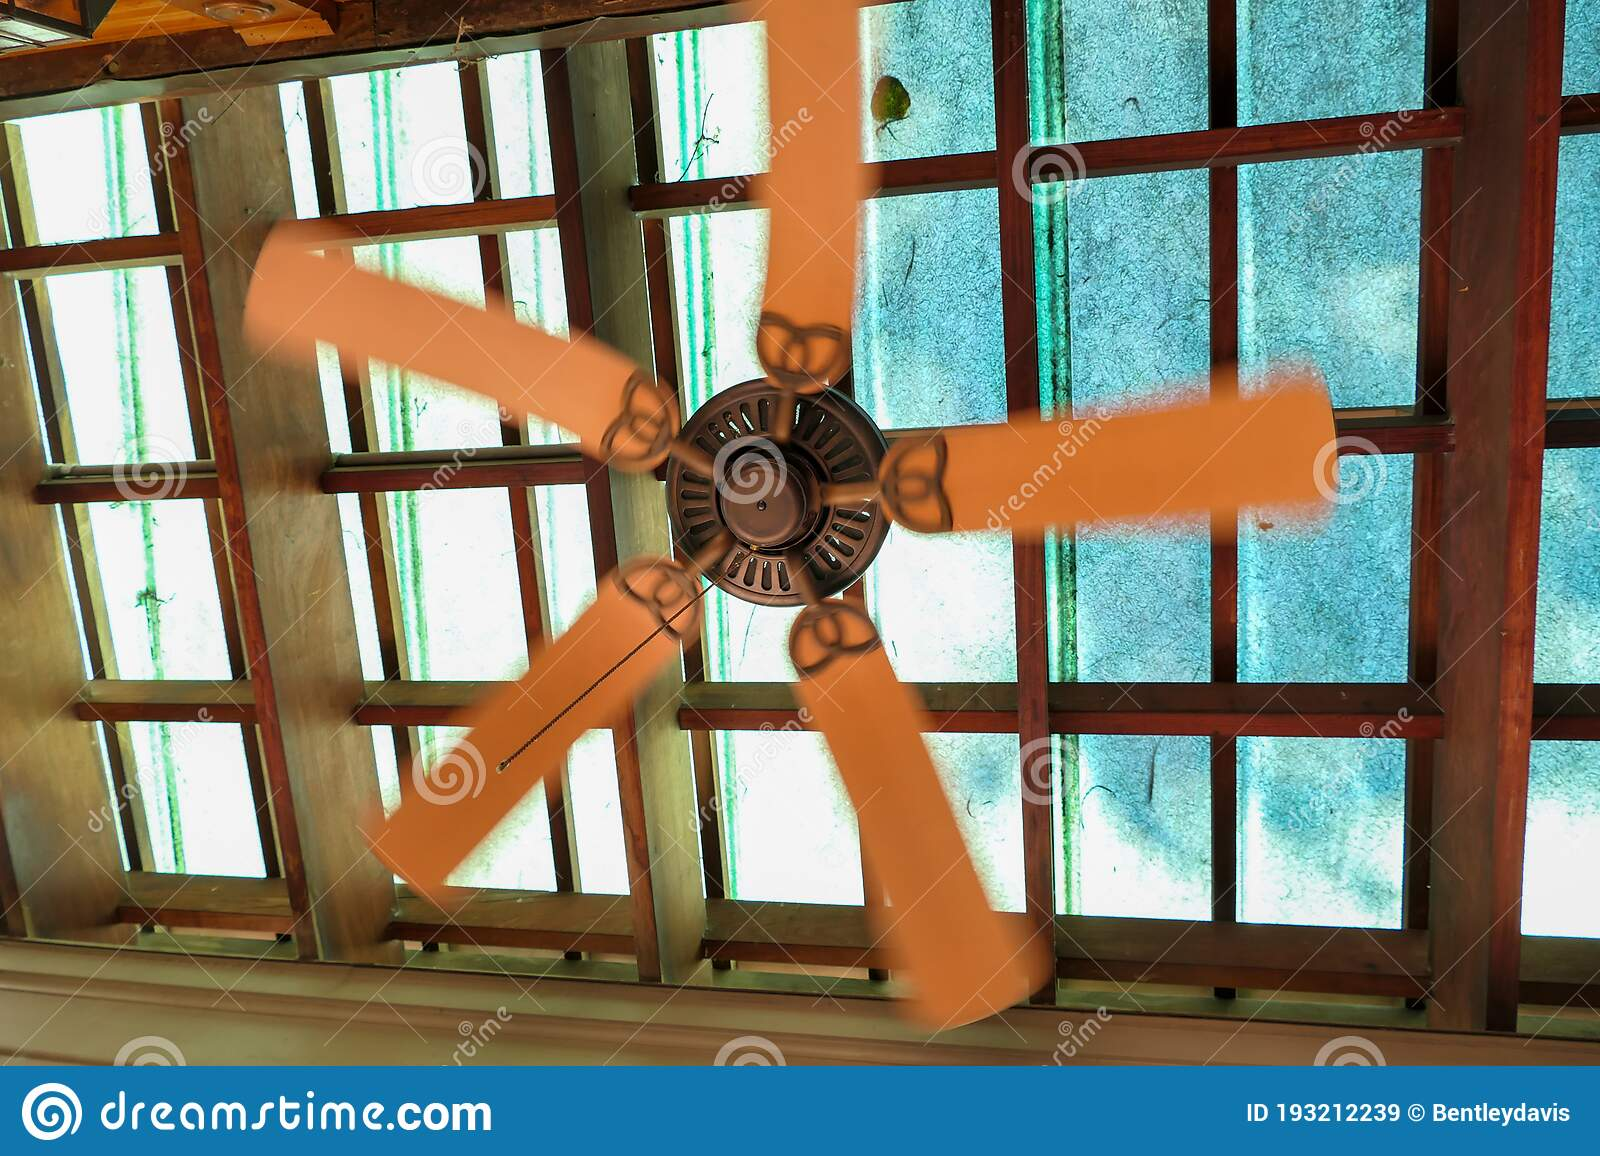 An Old Ceiling Fan On A Skylight Stock Image Image Of Spinning Home 193212239